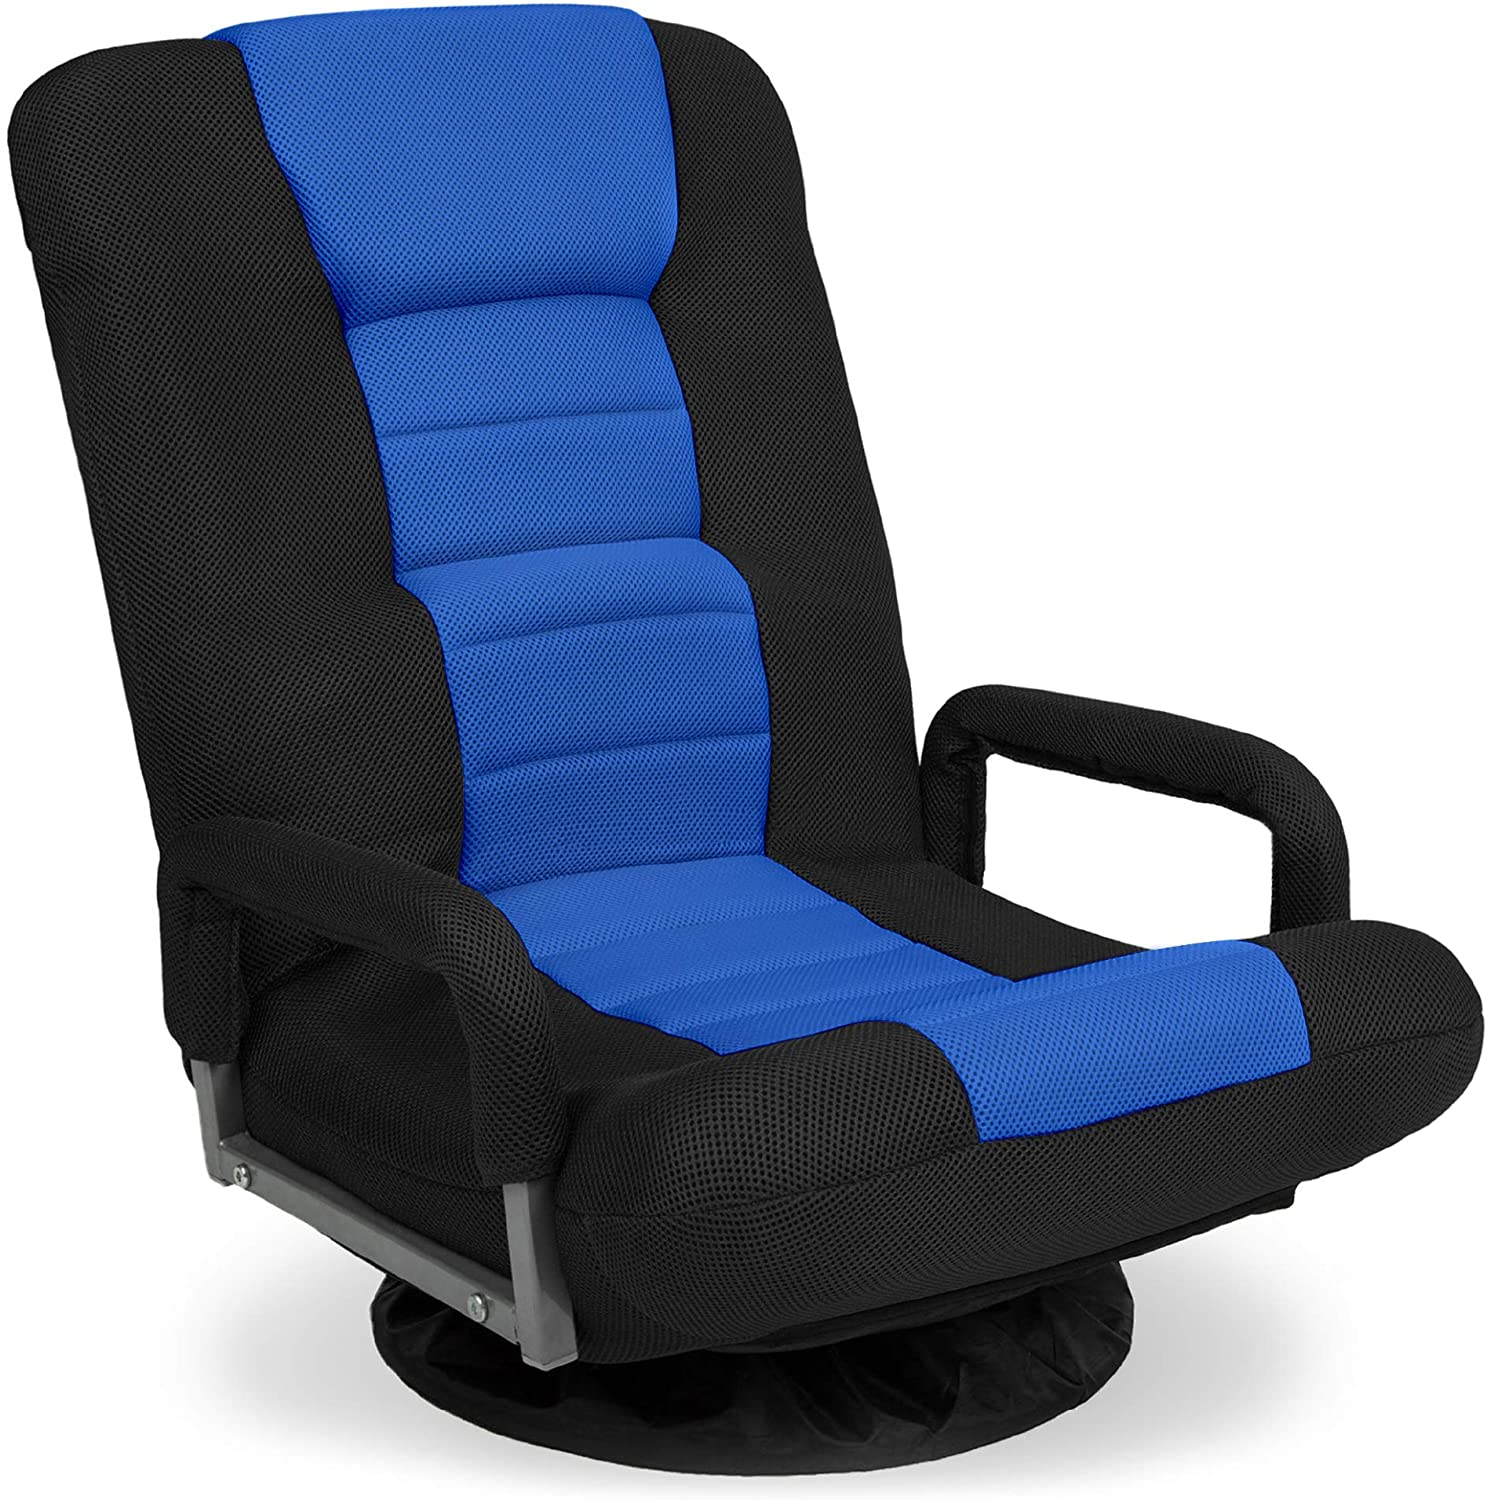 Best Choice Products Swivel Gaming Cheap bargain 360 Great interest Degree Chair Multipurpose